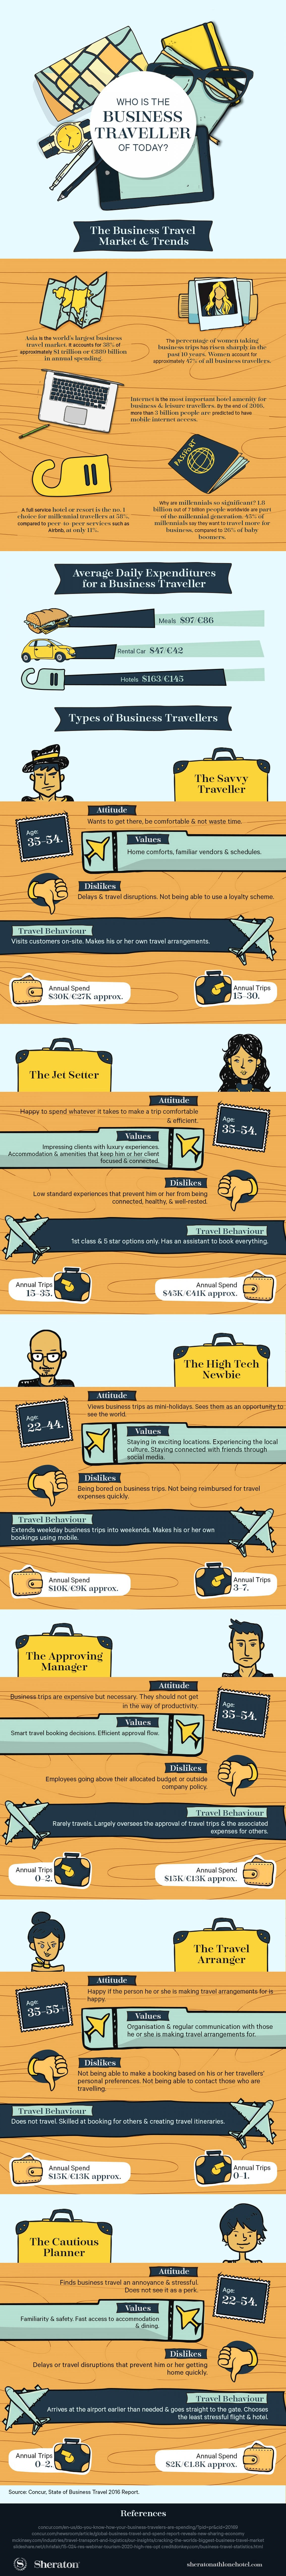 6 Types of Business Travellers - Travel Infographic